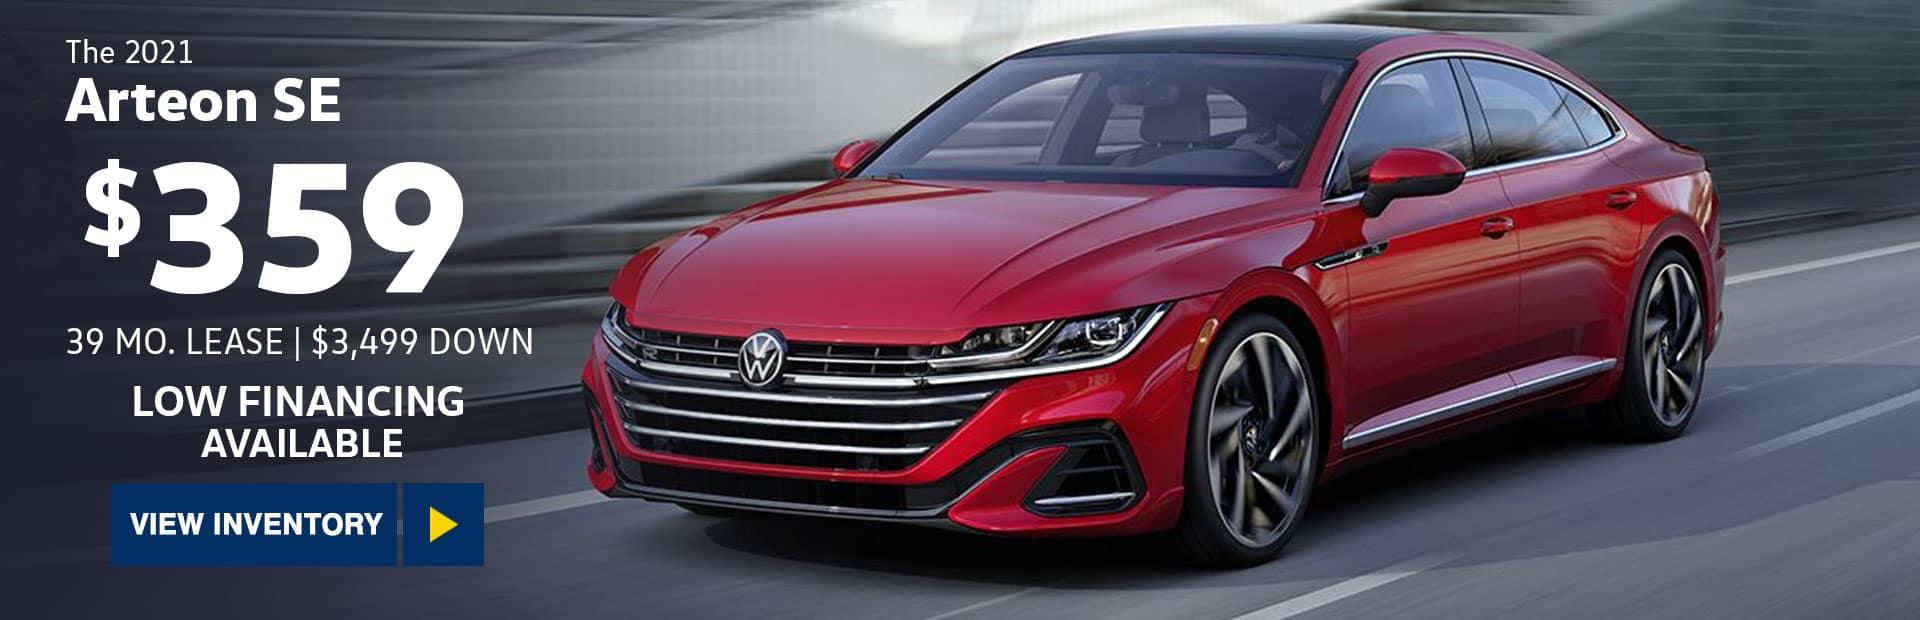 new 2022 vw arteon lease special for sale in glendale california